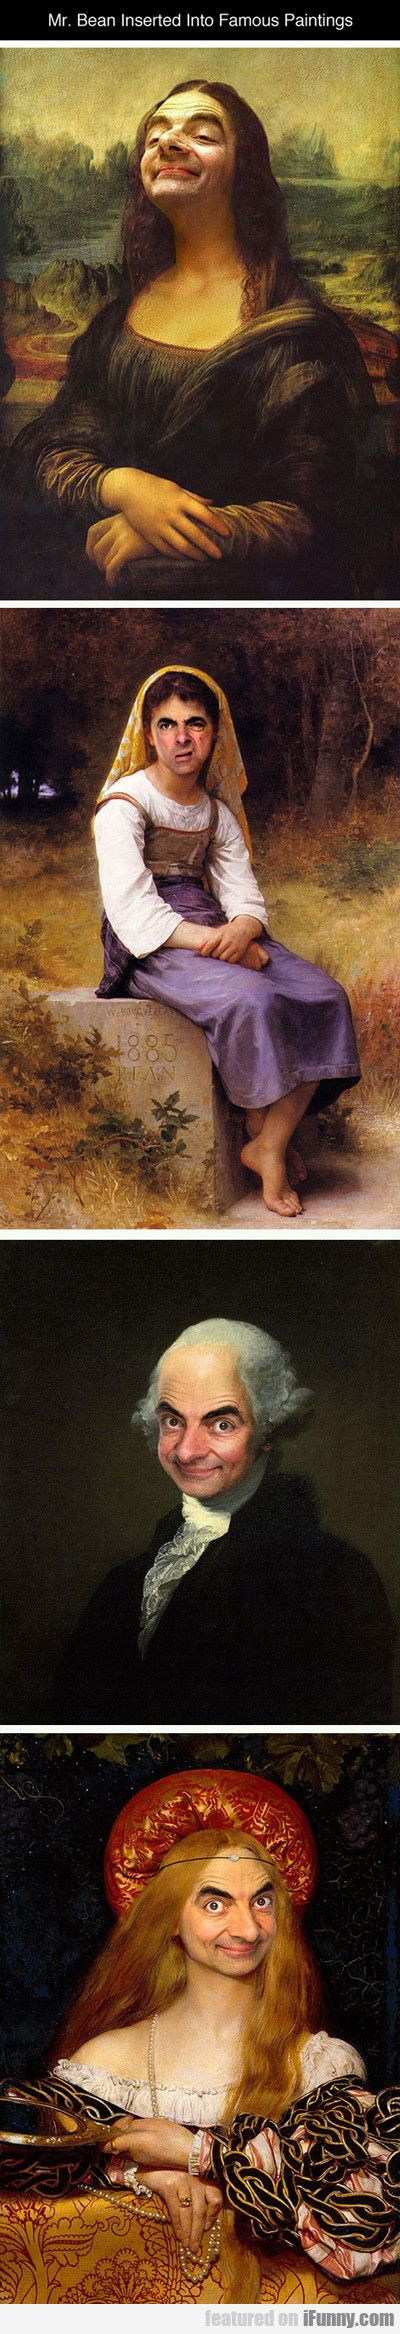 Mr. Bean Inserted Into Famous Paintings...